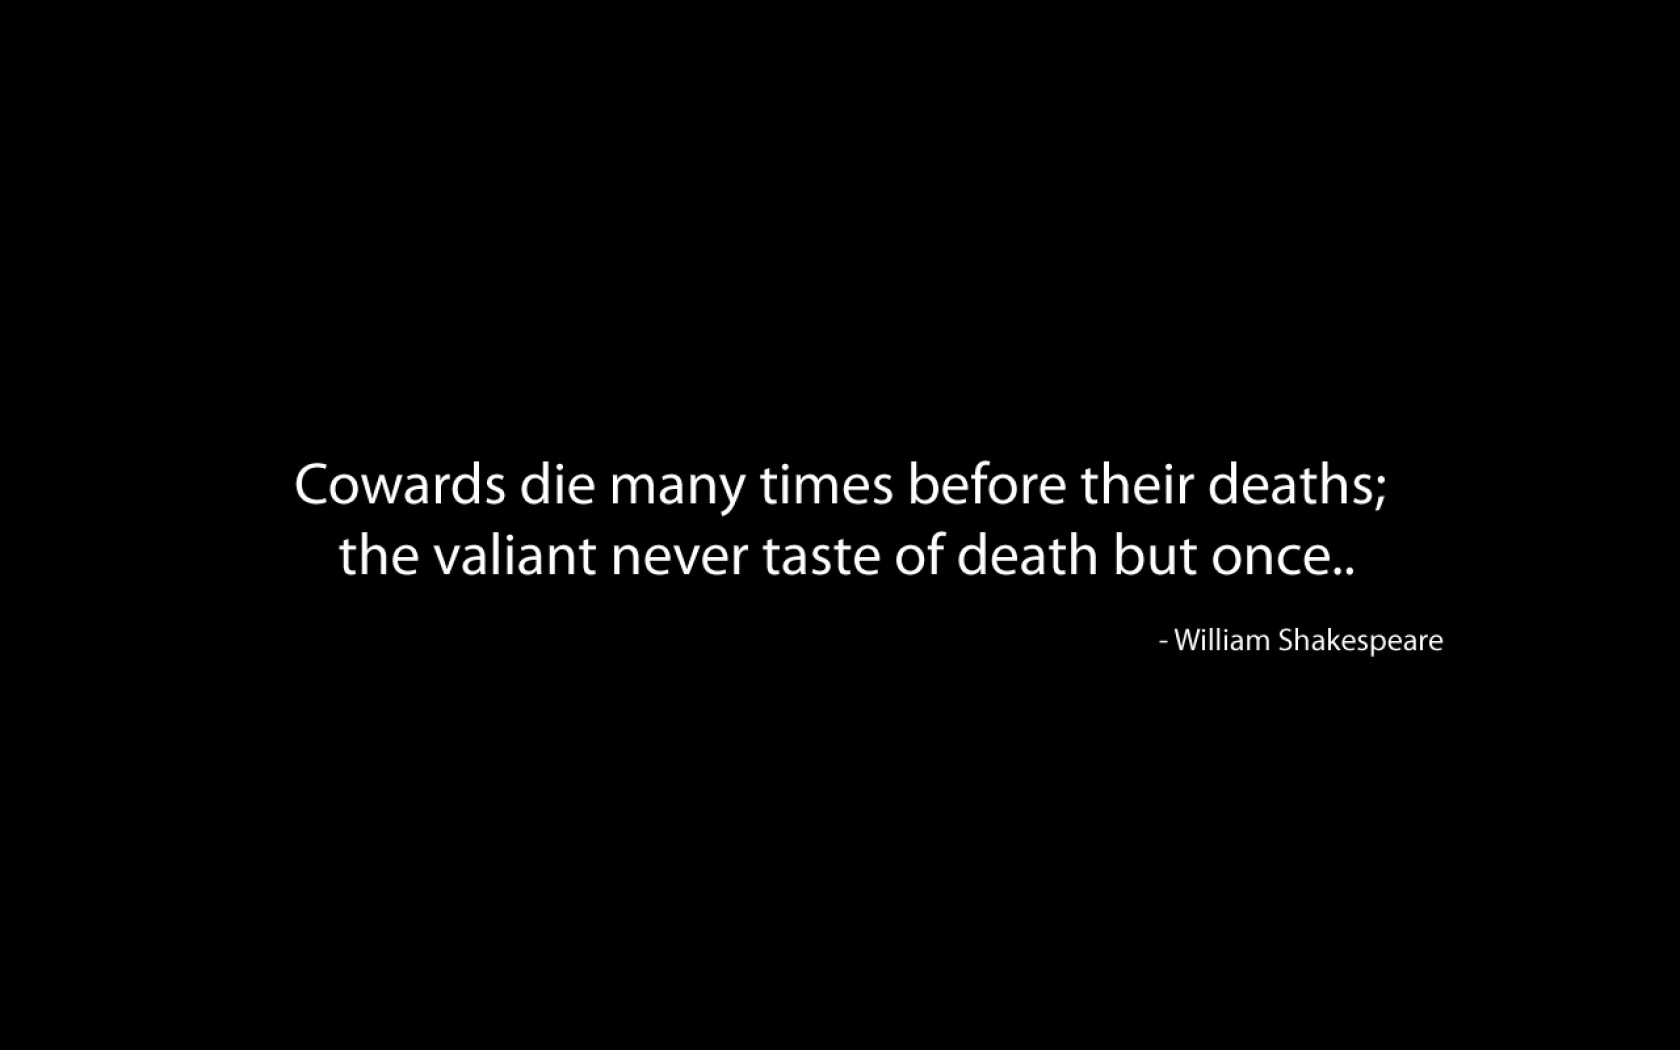 william-shakespeare-quotes-about-life-download-text-quotes-wallpaper-1680x1050-25402